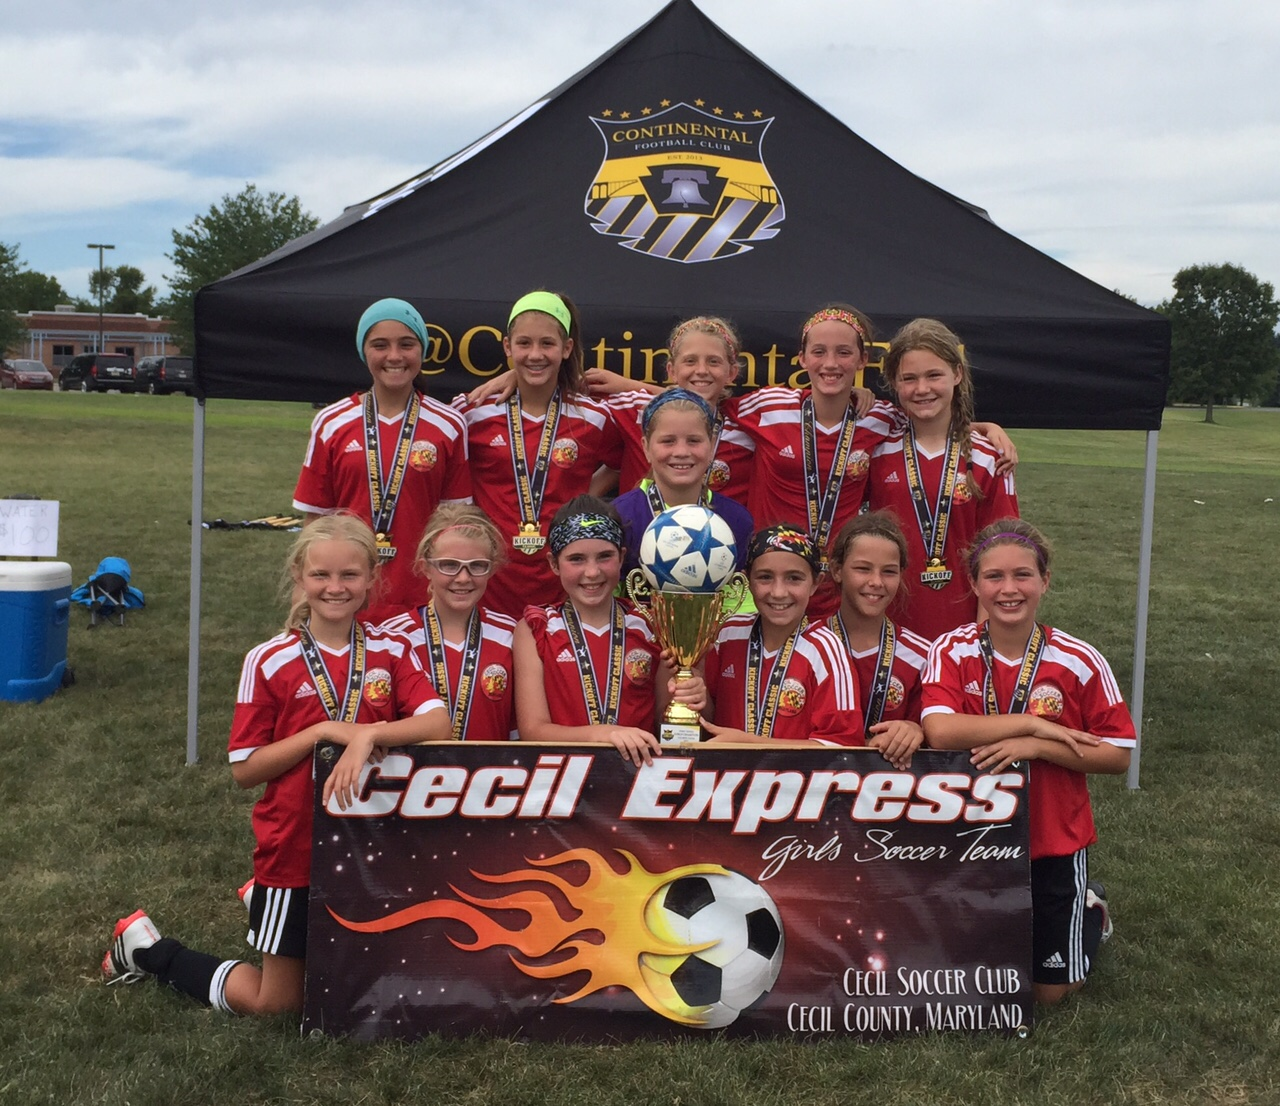 Cecil Express - Spirit United 2015 Champs!